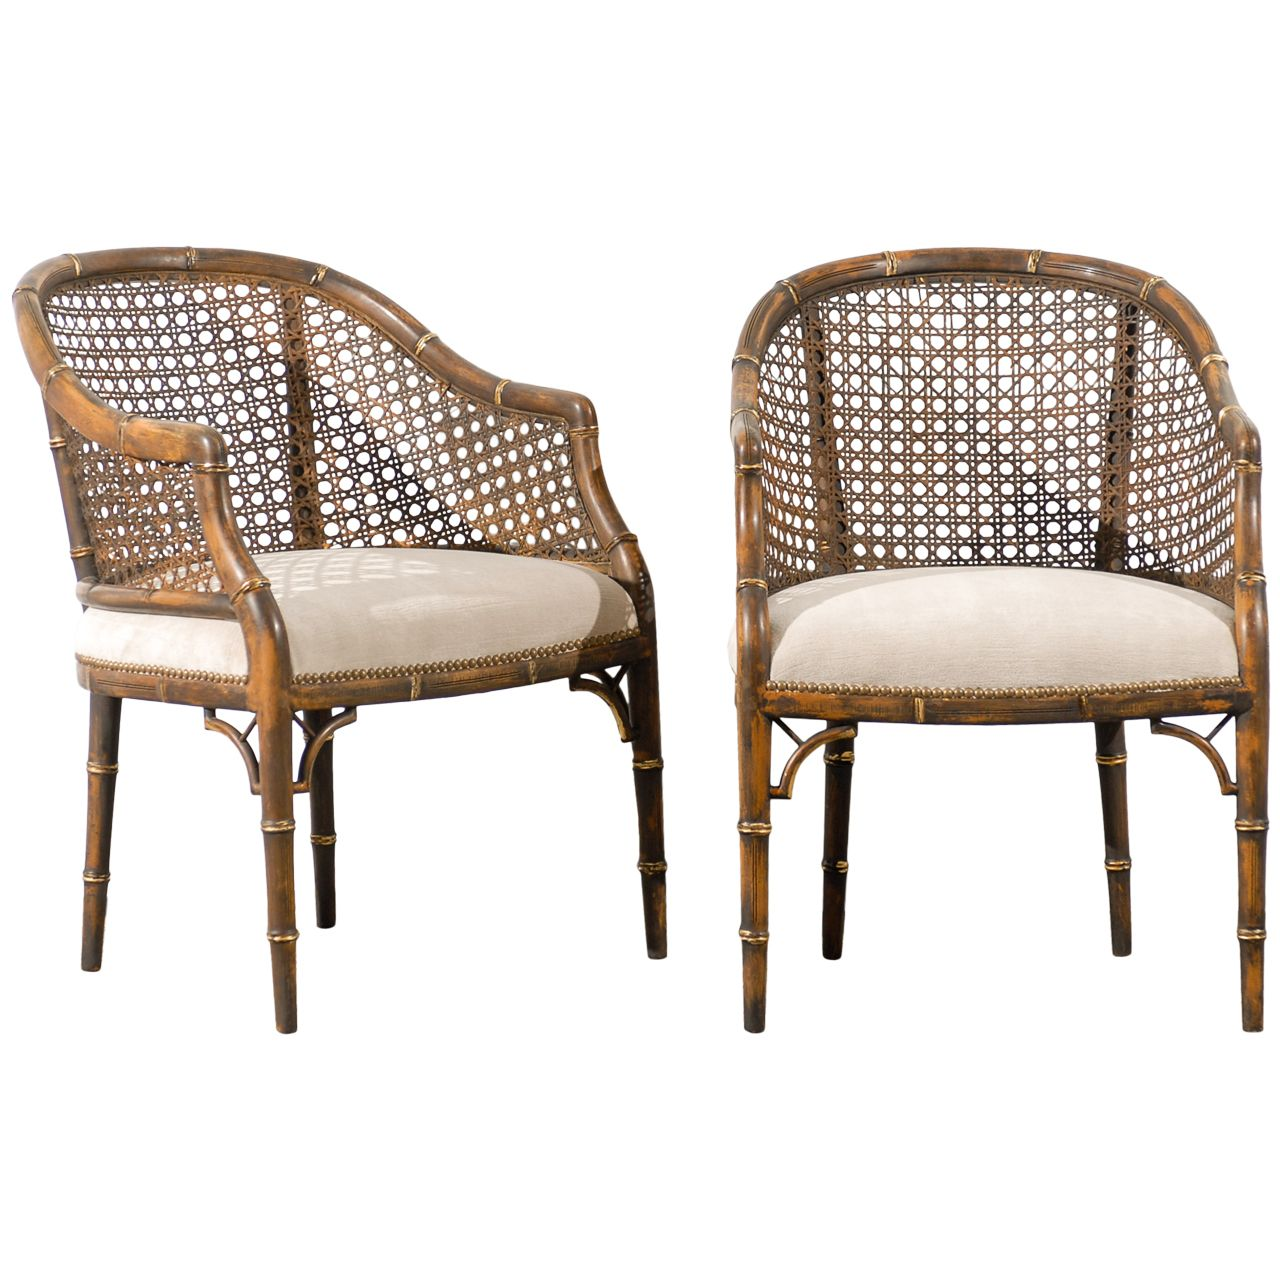 Vintage Faux Bamboo Cane Barrel Back Chairs Bamboo Chair Bamboo Dining Chairs Bamboo Chair Design